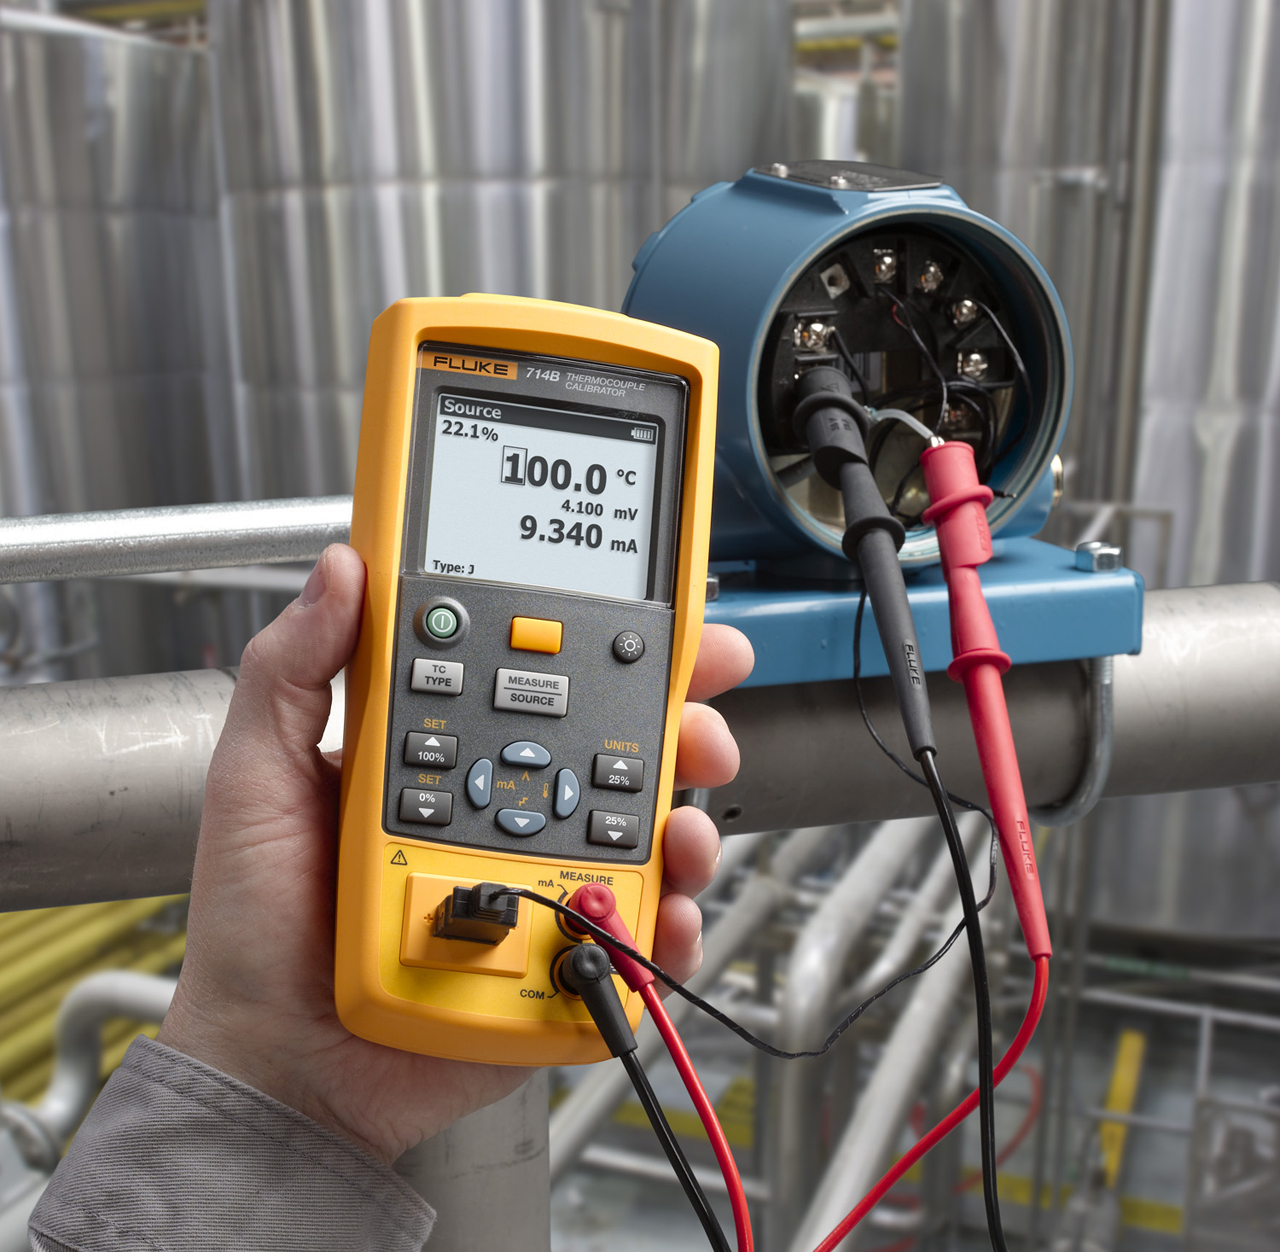 FLUKE 714B - LCD Thermocouple Calibrator